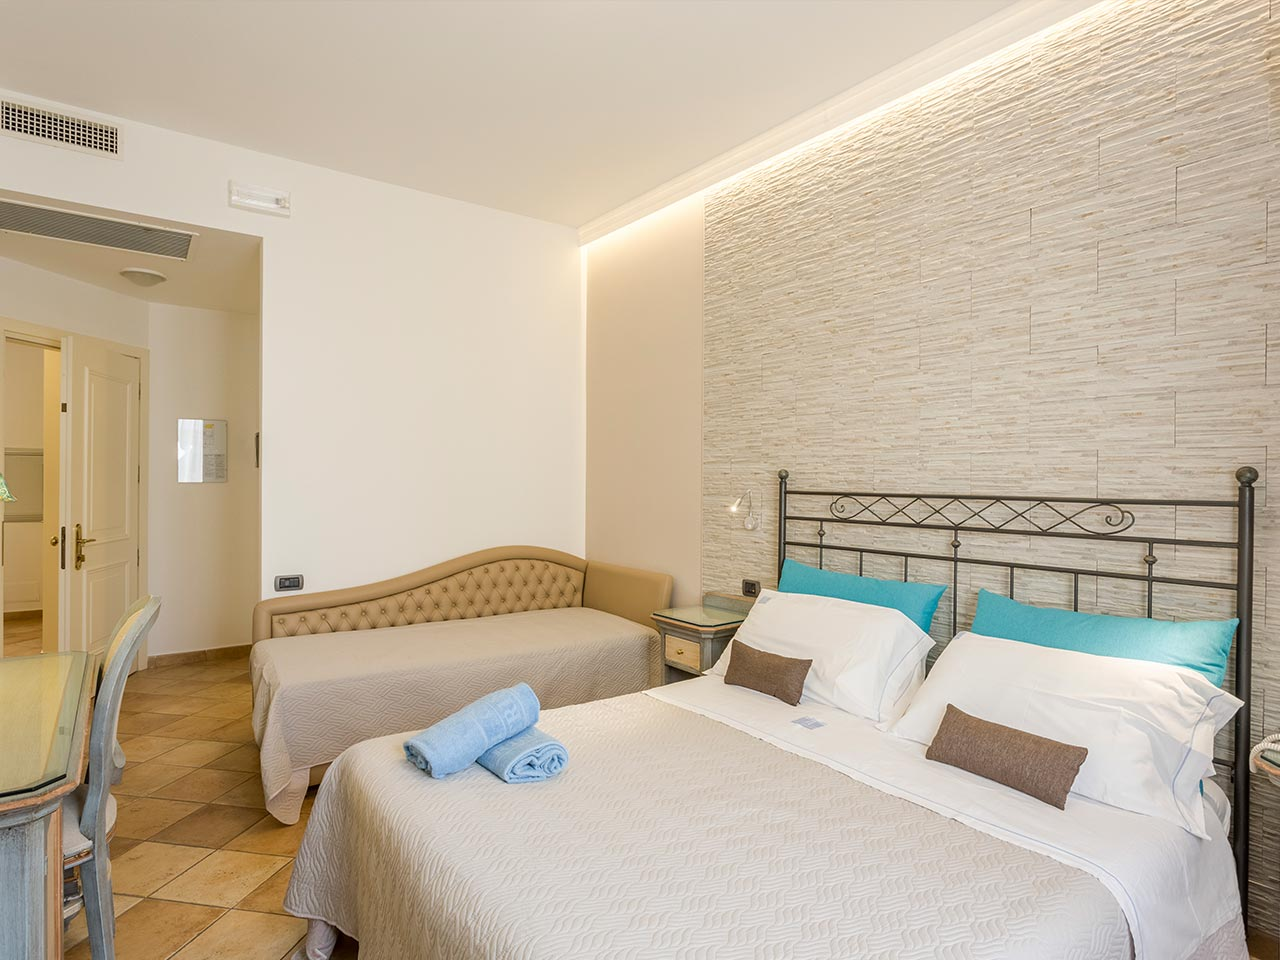 Our Rooms - Hotel Trinacria - San Vito Lo Capo